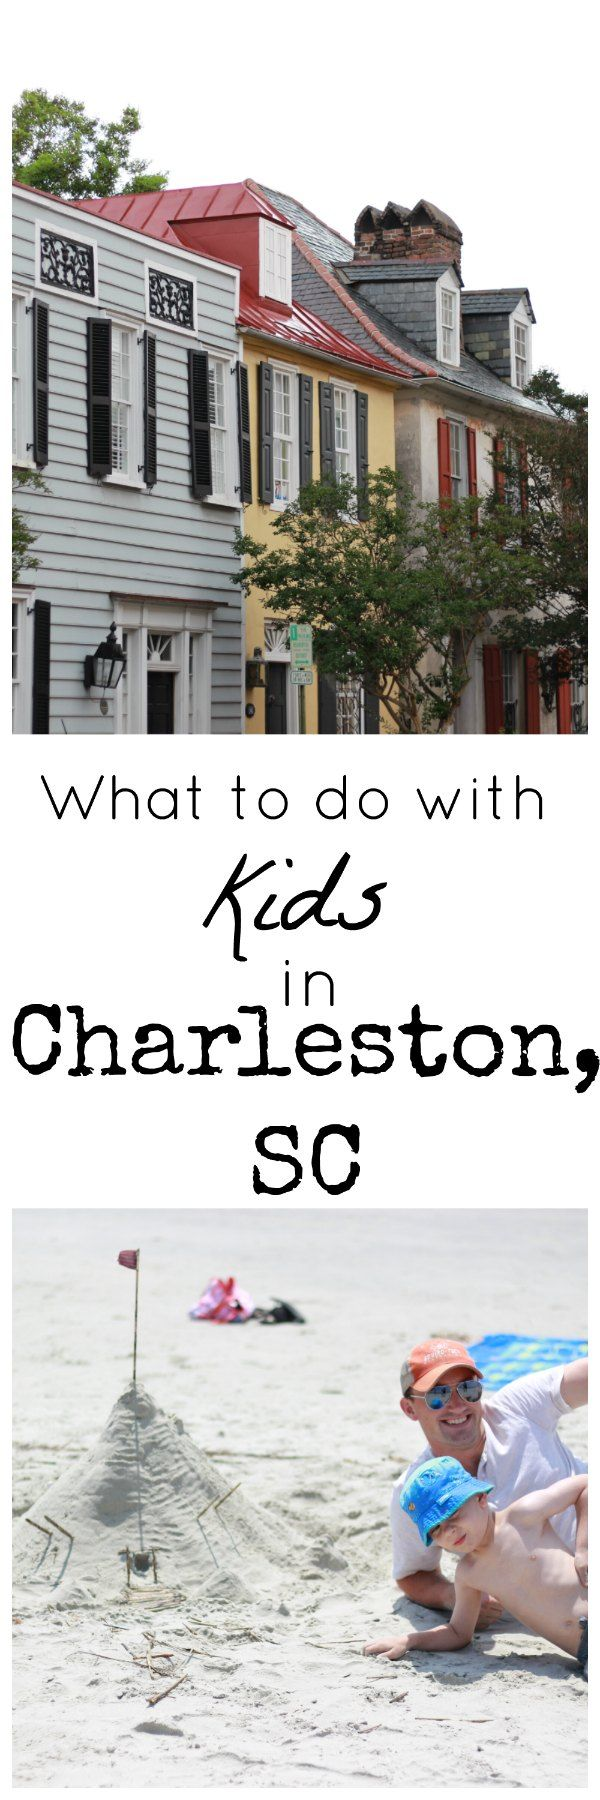 380 best the best of the blog images on pinterest apple for Fun things to do in charleston sc